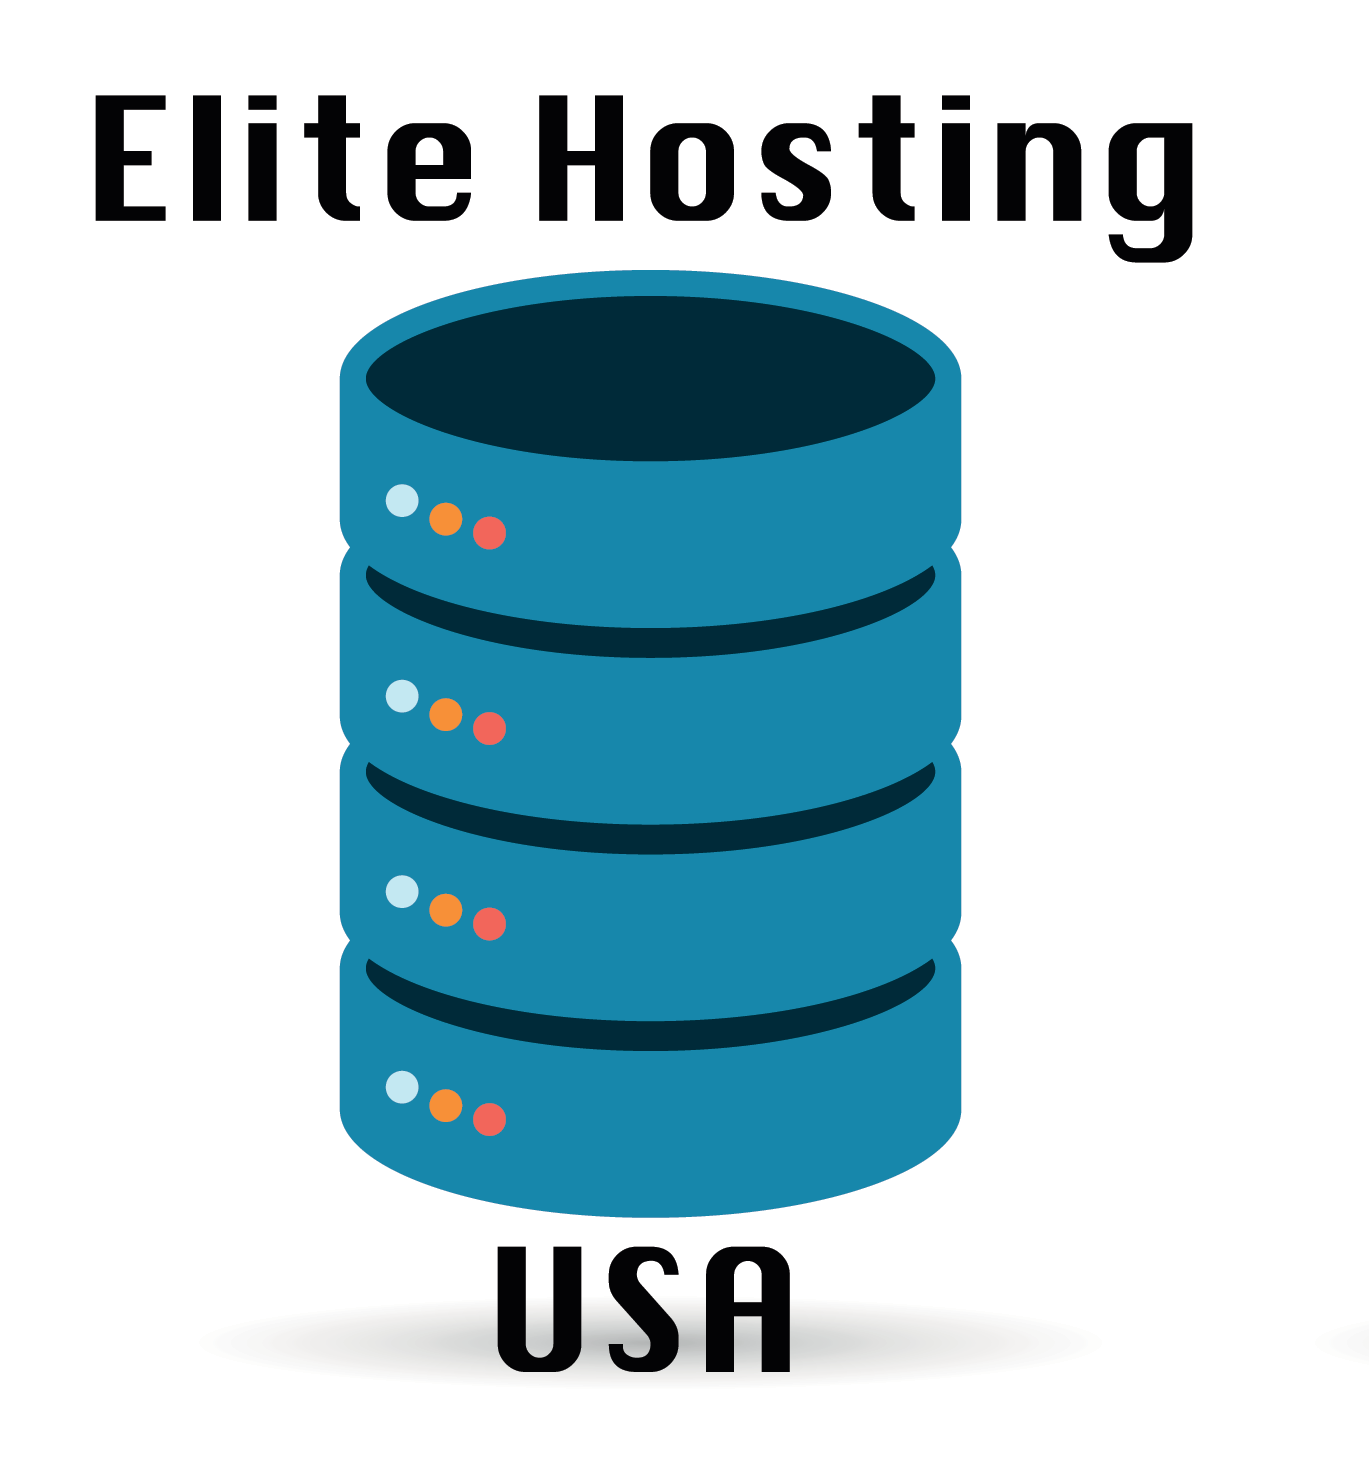 Elite Hosting USA